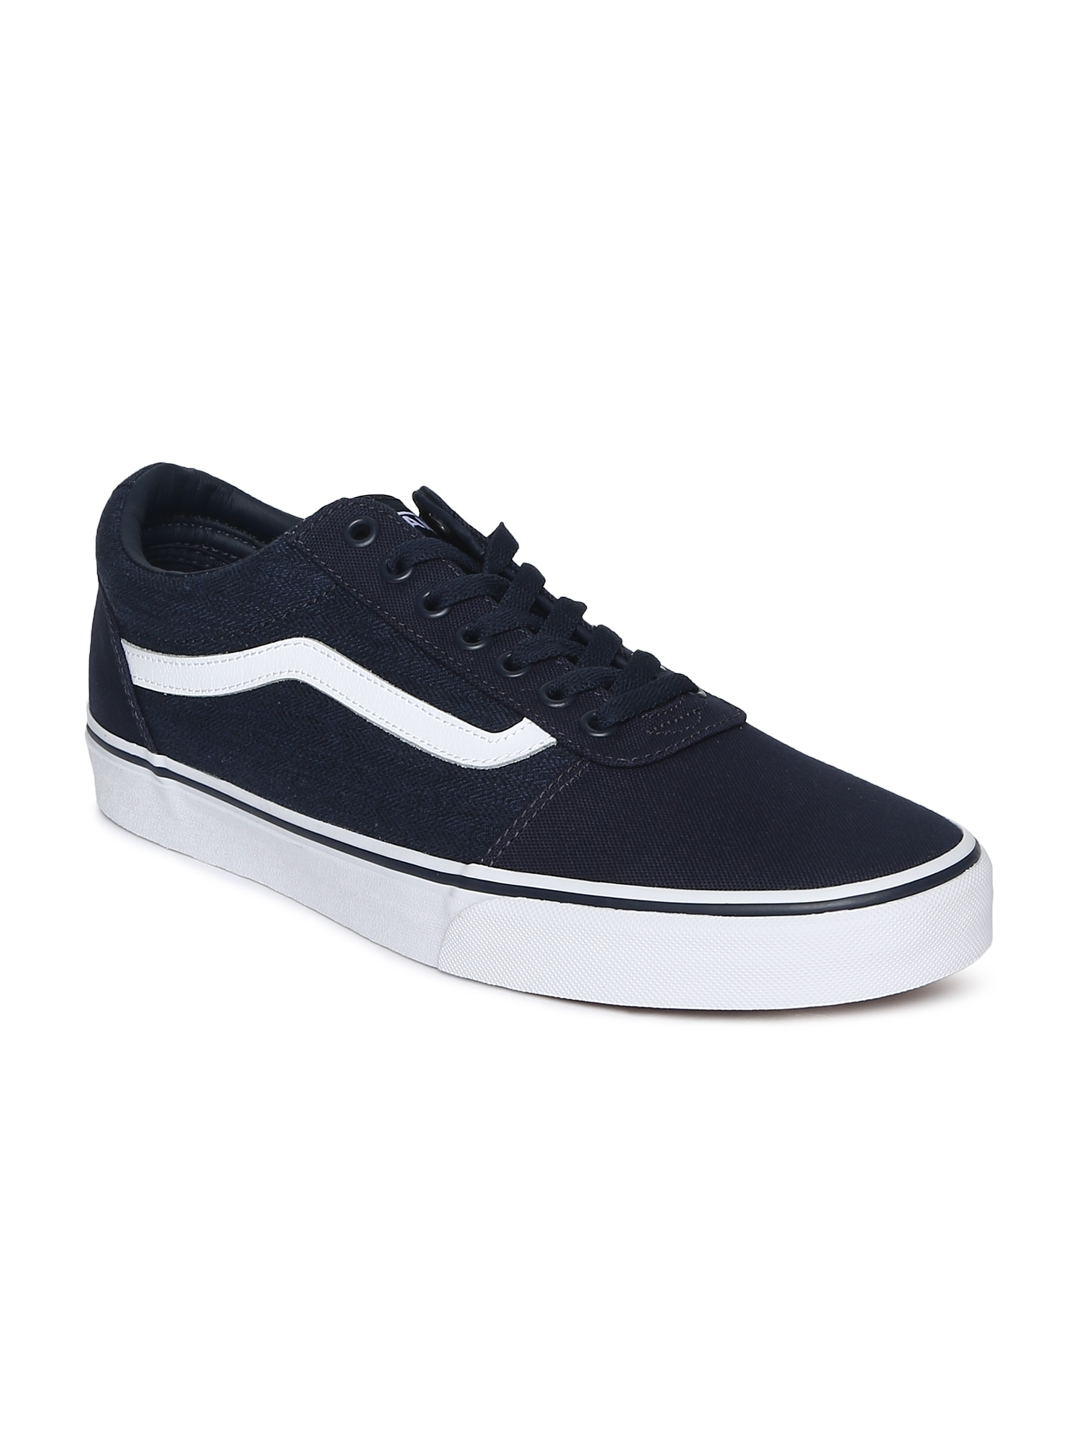 8e0c0d60f1b Buy Vans Men Navy Blue Ward Sneakers - Casual Shoes for Men 7301215 ...